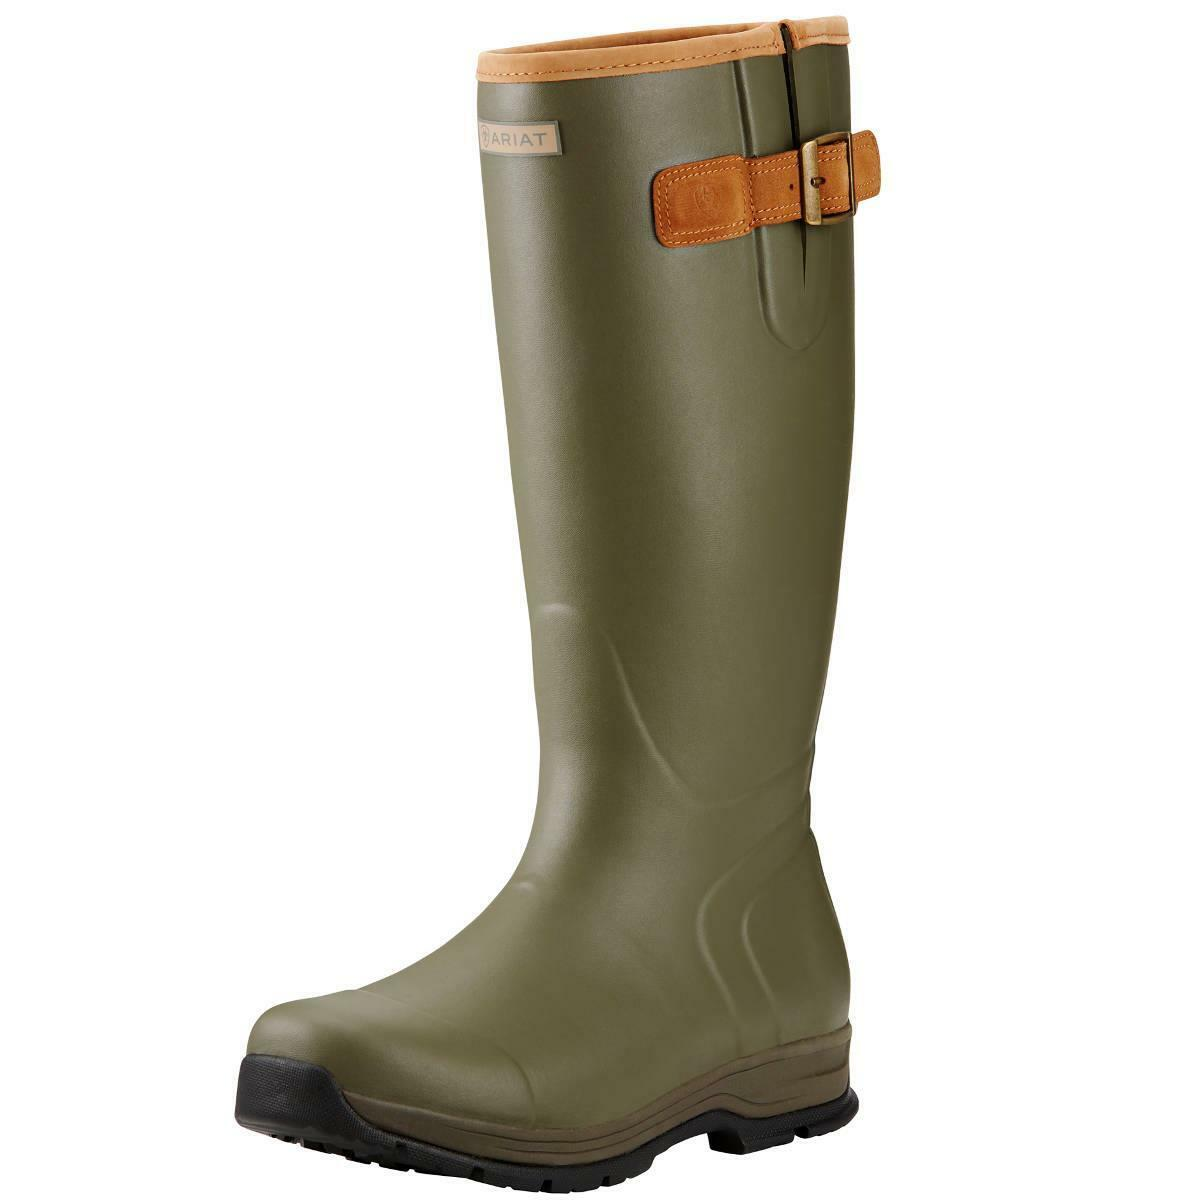 New Ariat Burford Wellies Mens - Olive Green